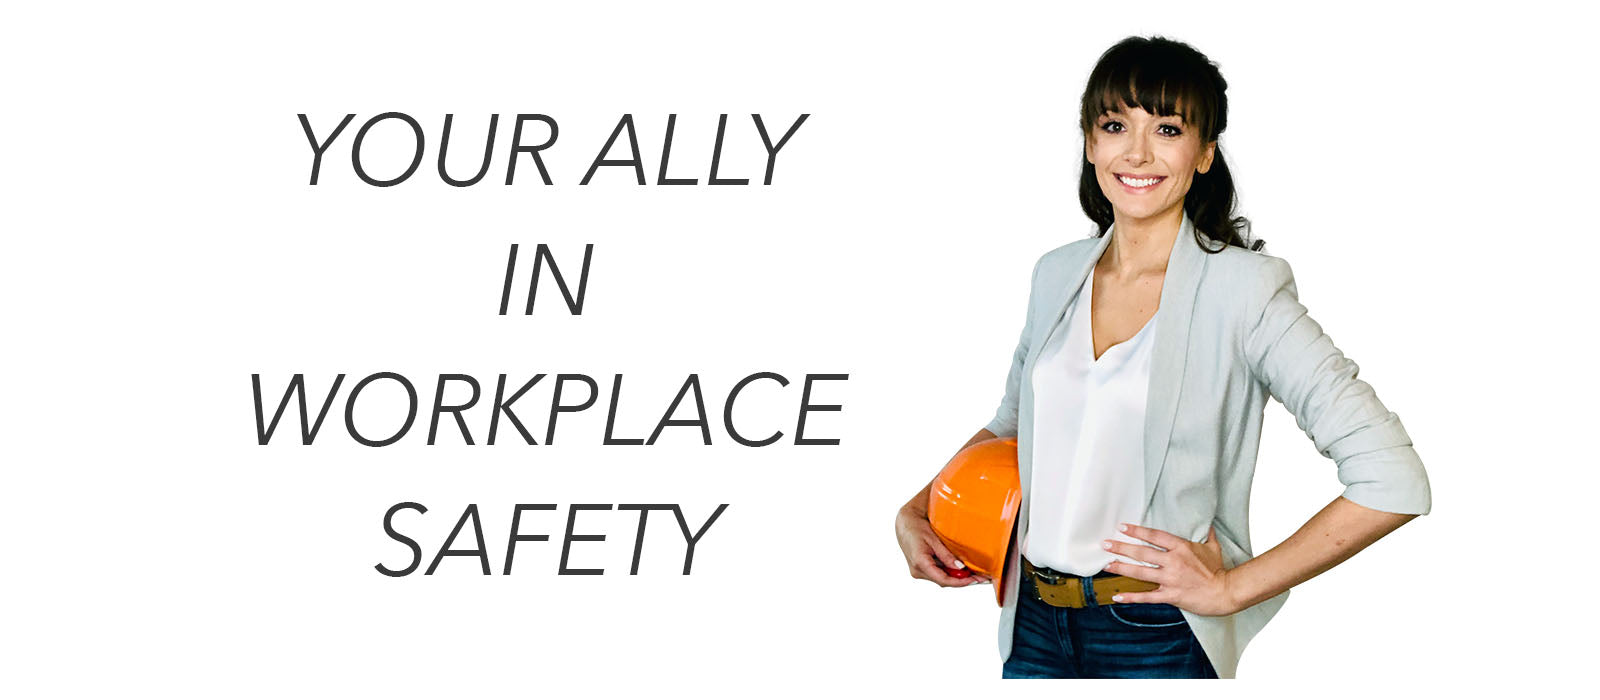 about ally safety